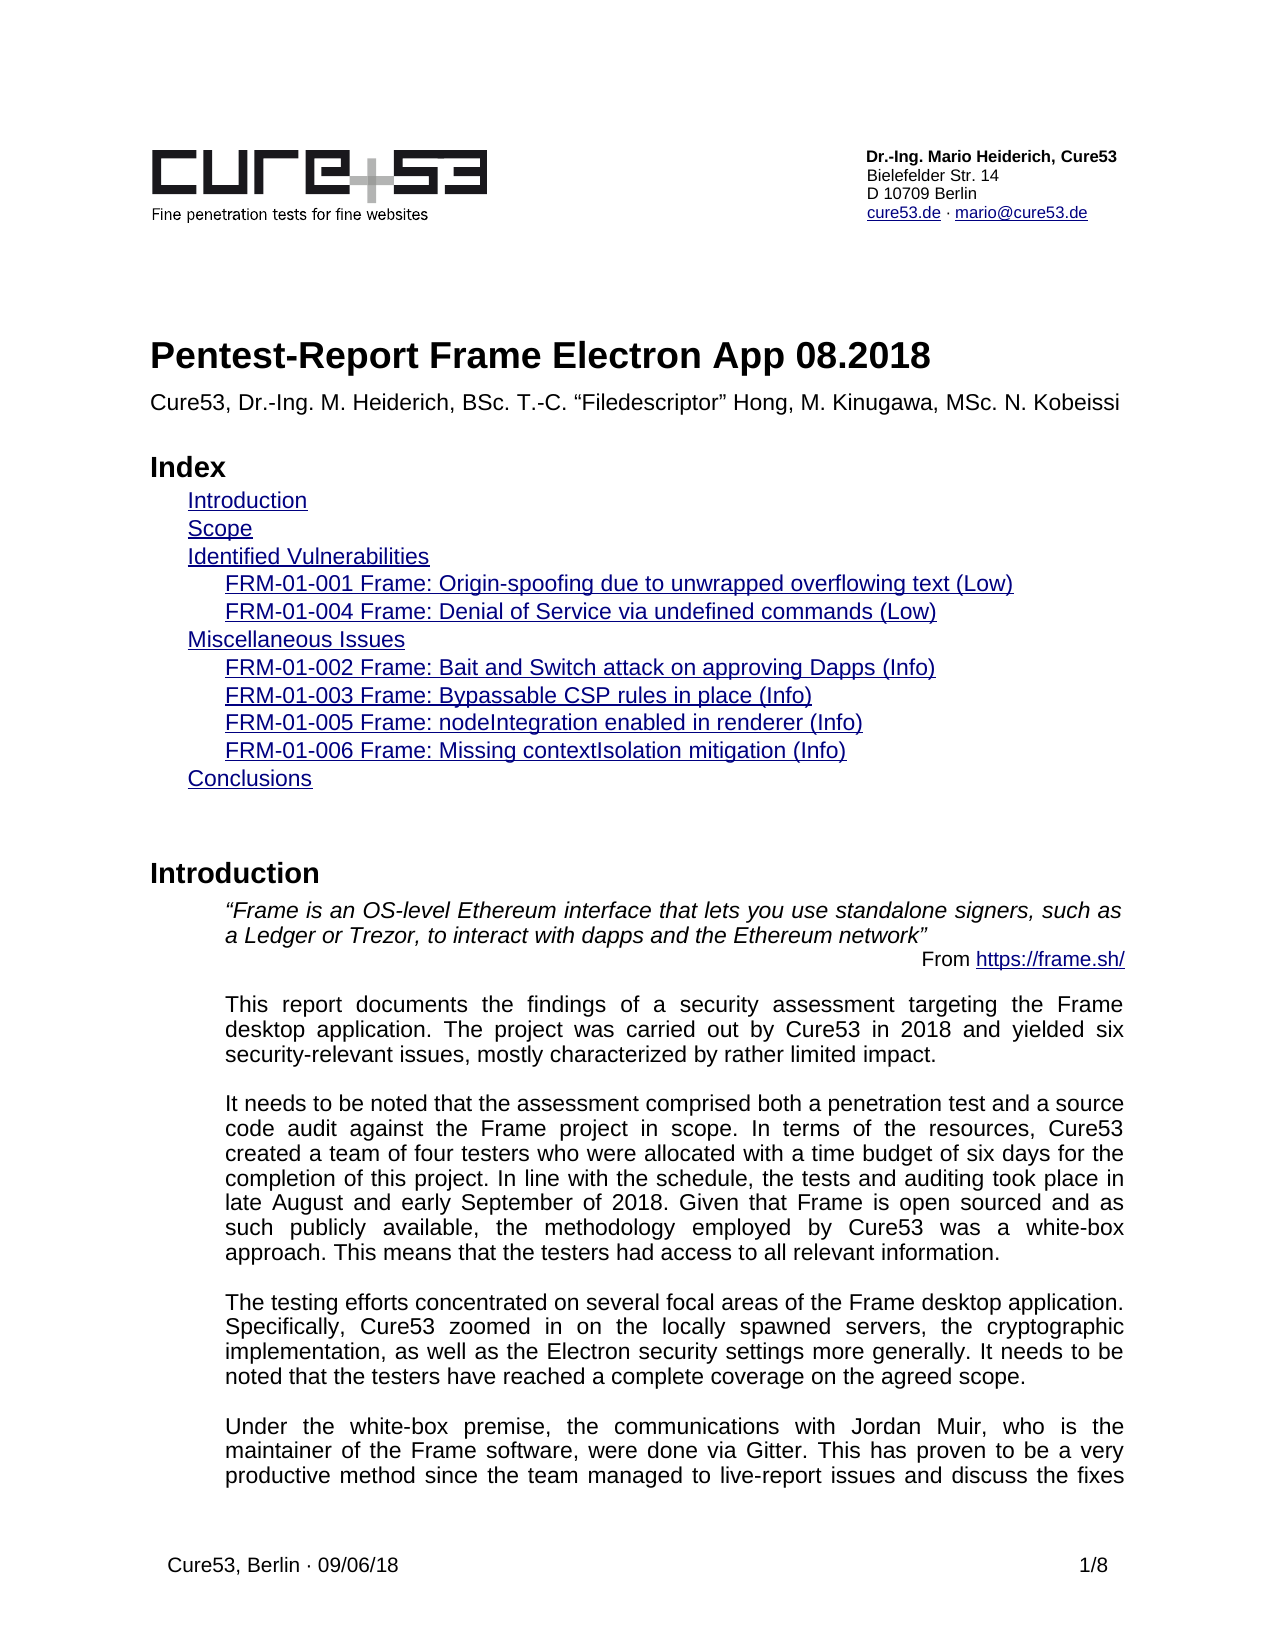 First page of the 'pentest-report frame' PDF